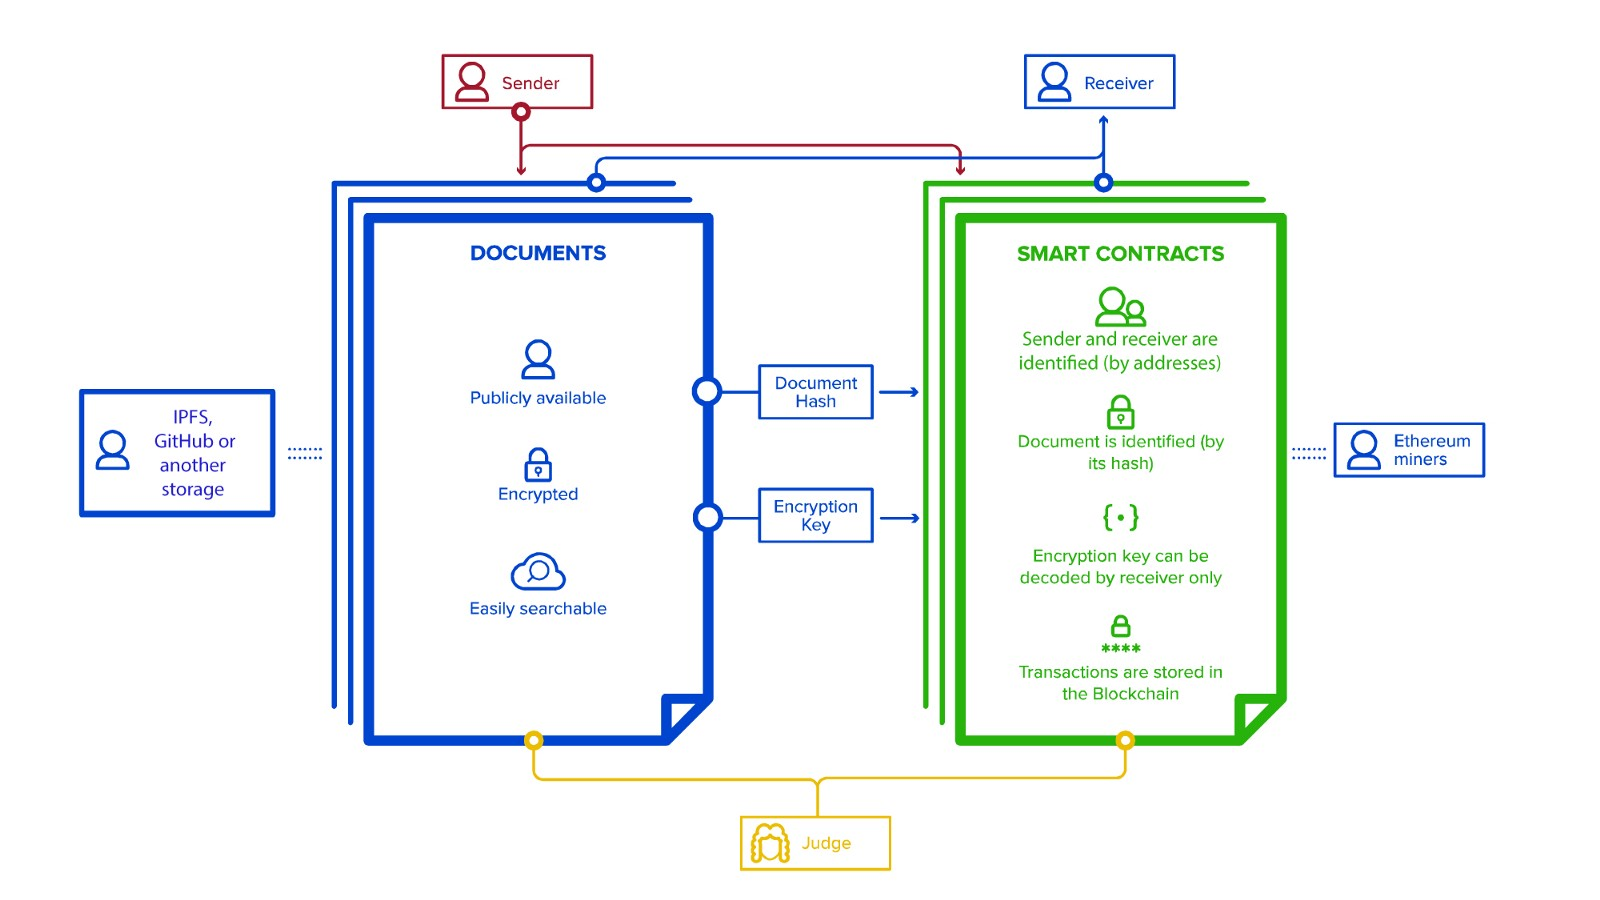 How to Use Blockchain Technology for Secure Document Transfer - By